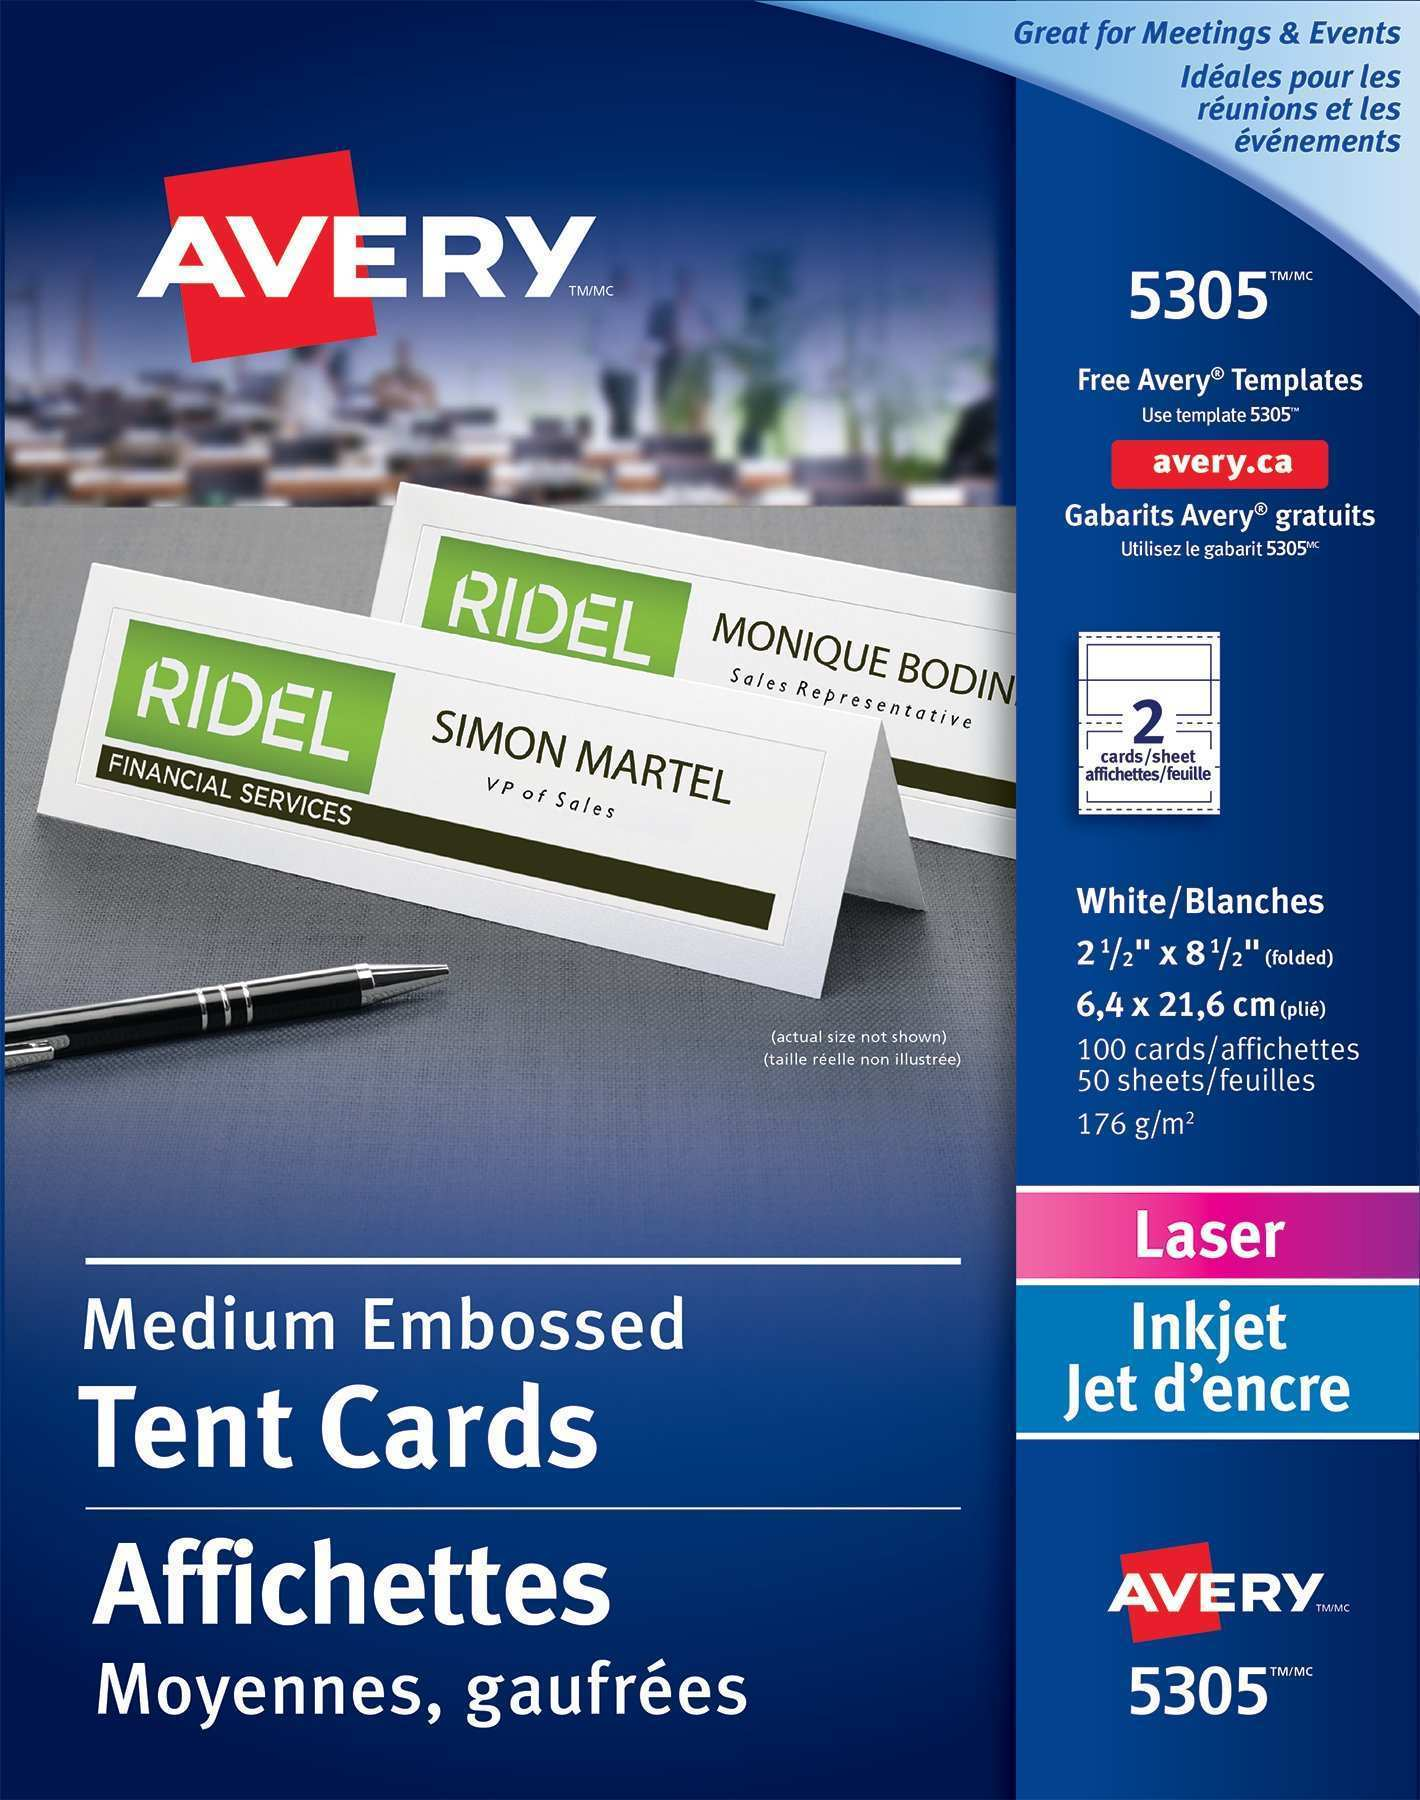 70 Free Printable Avery Laser Tent Card 5305 Template for Ms Word for Avery Laser Tent Card 5305 Template